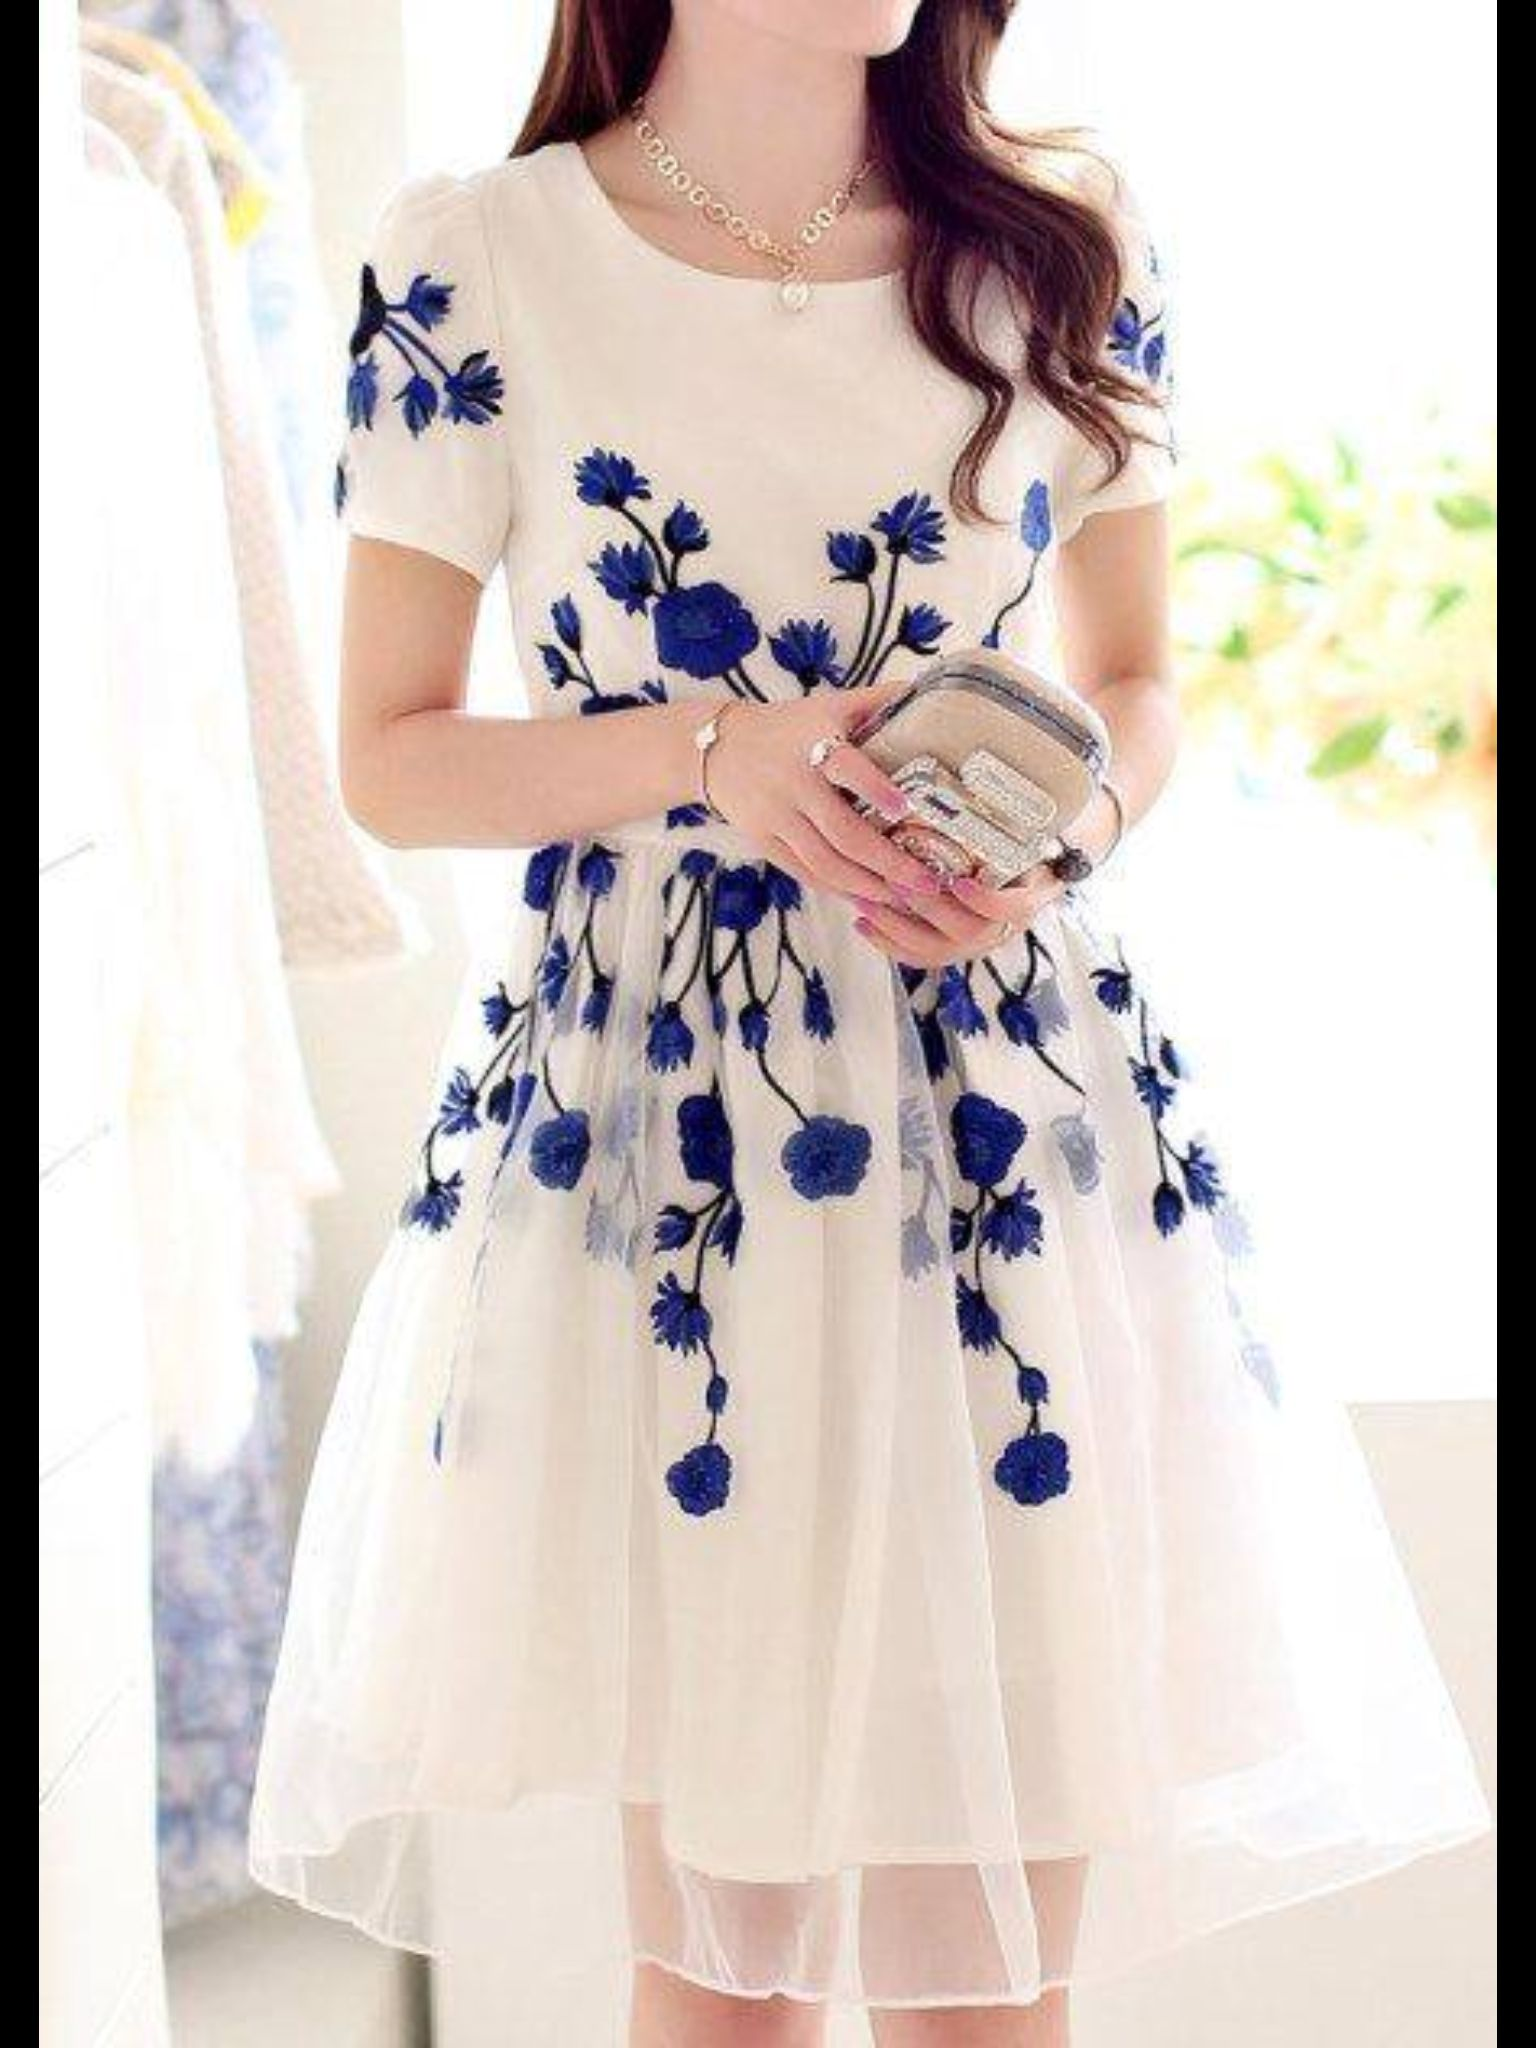 Pin by ms niesha on fashion pinterest nice clothes and clothing embroidery back zipper mid waist knee length dress women summer spring casual dress pretty romantic vintage chic in china blue and white perfect alice style izmirmasajfo